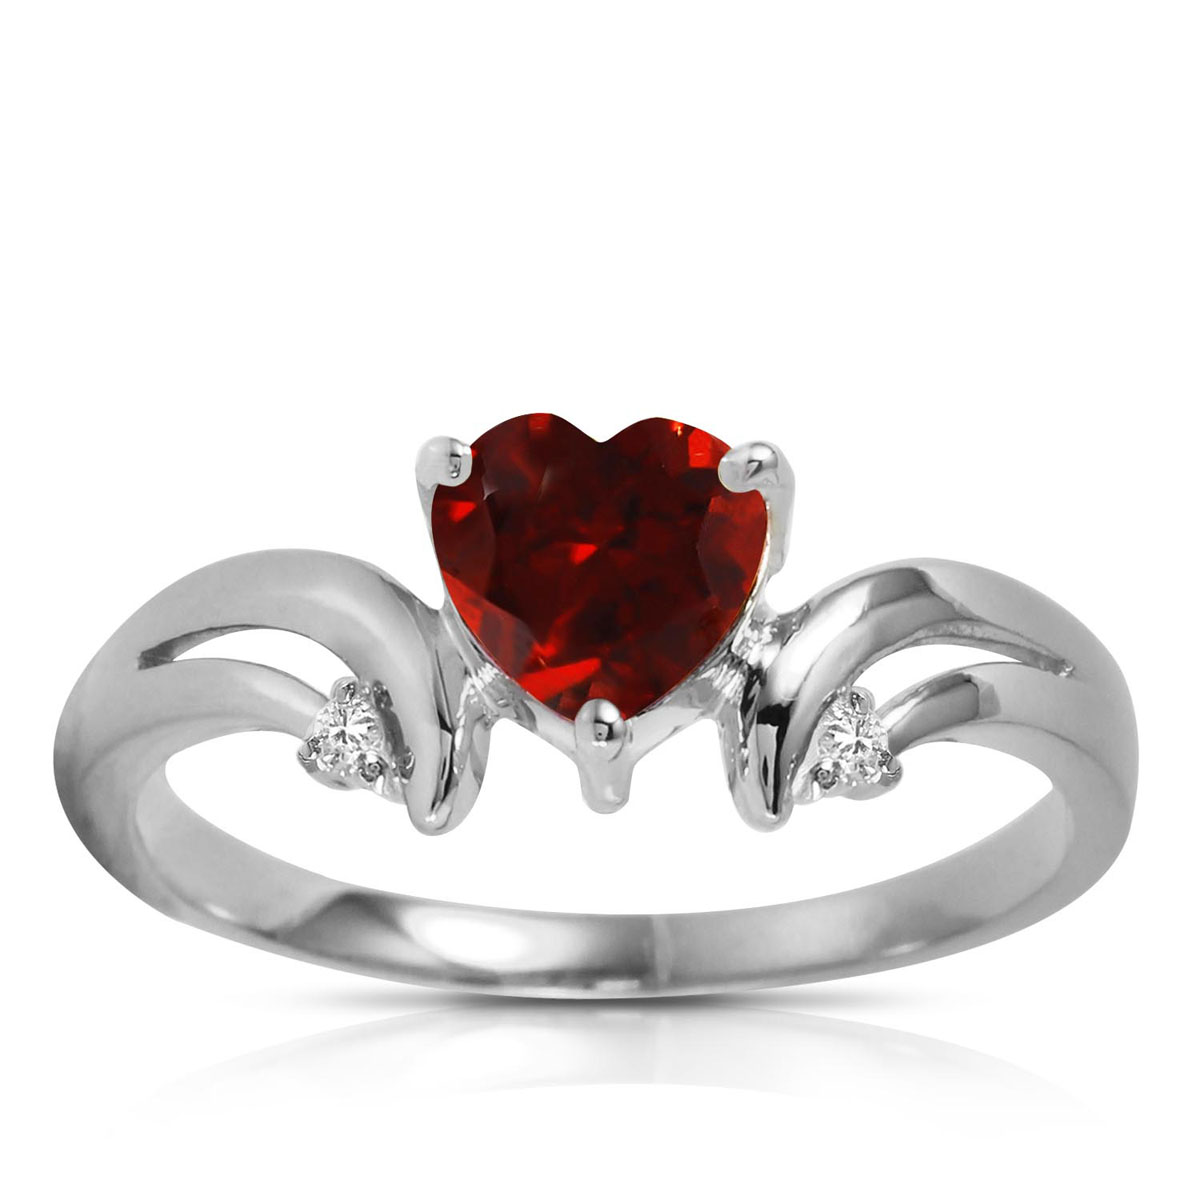 Garnet & Diamond Affection Heart Ring in 9ct White Gold